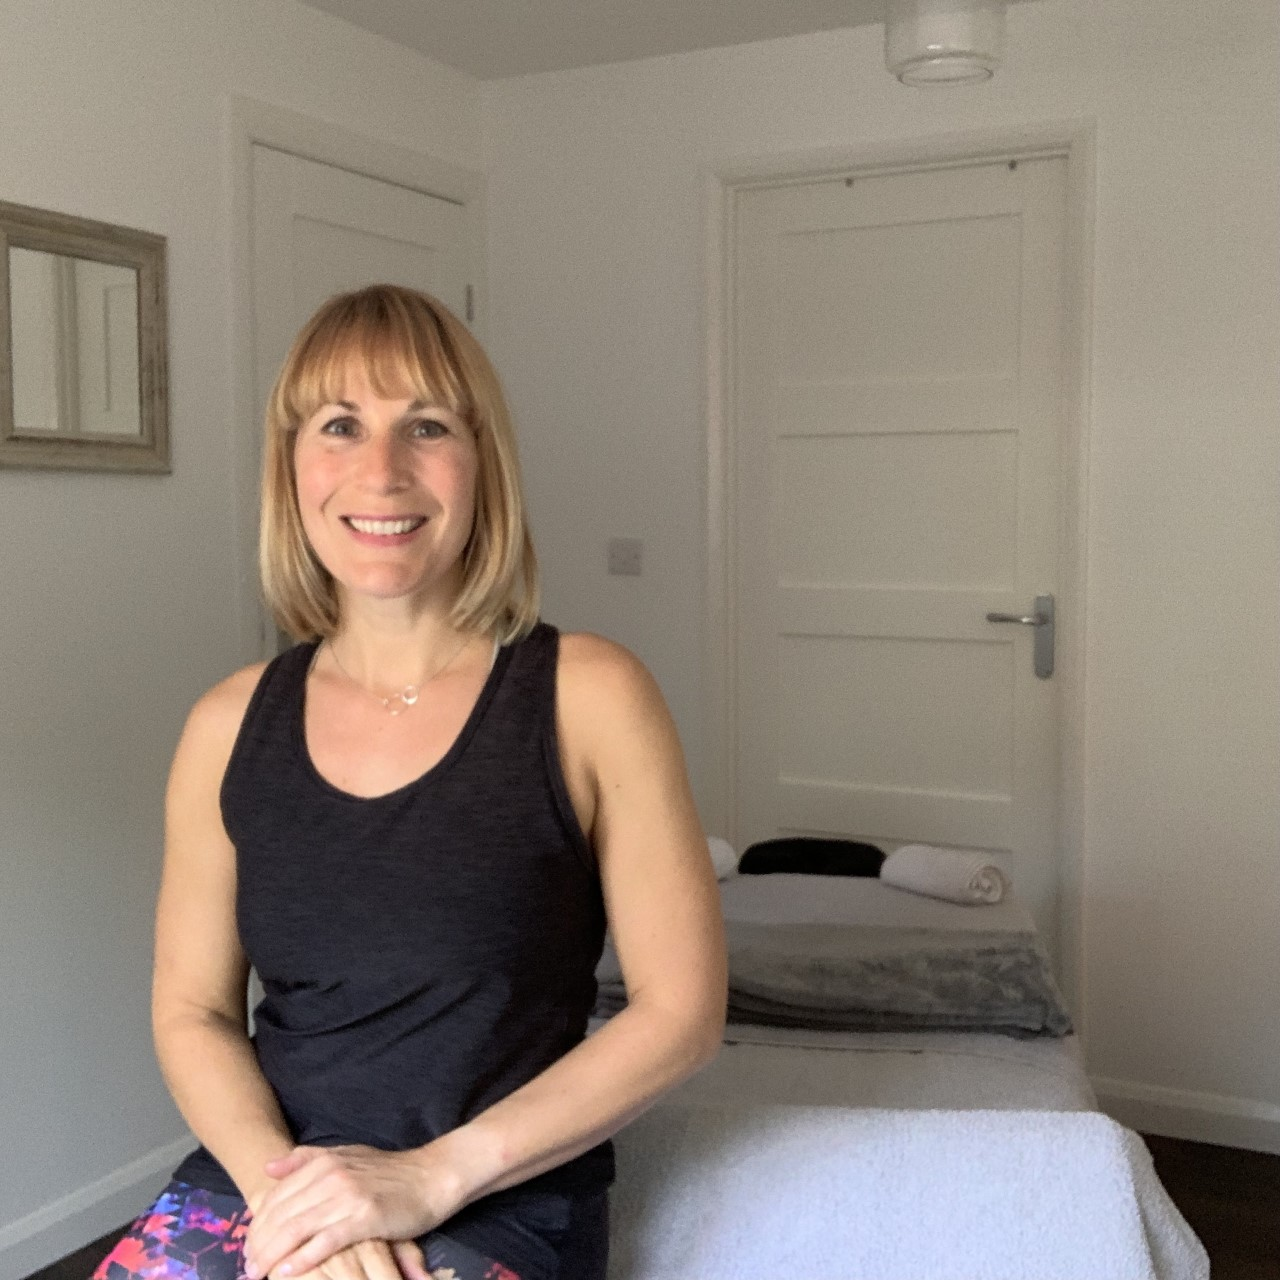 Reigate Massage and Yoga pic 2